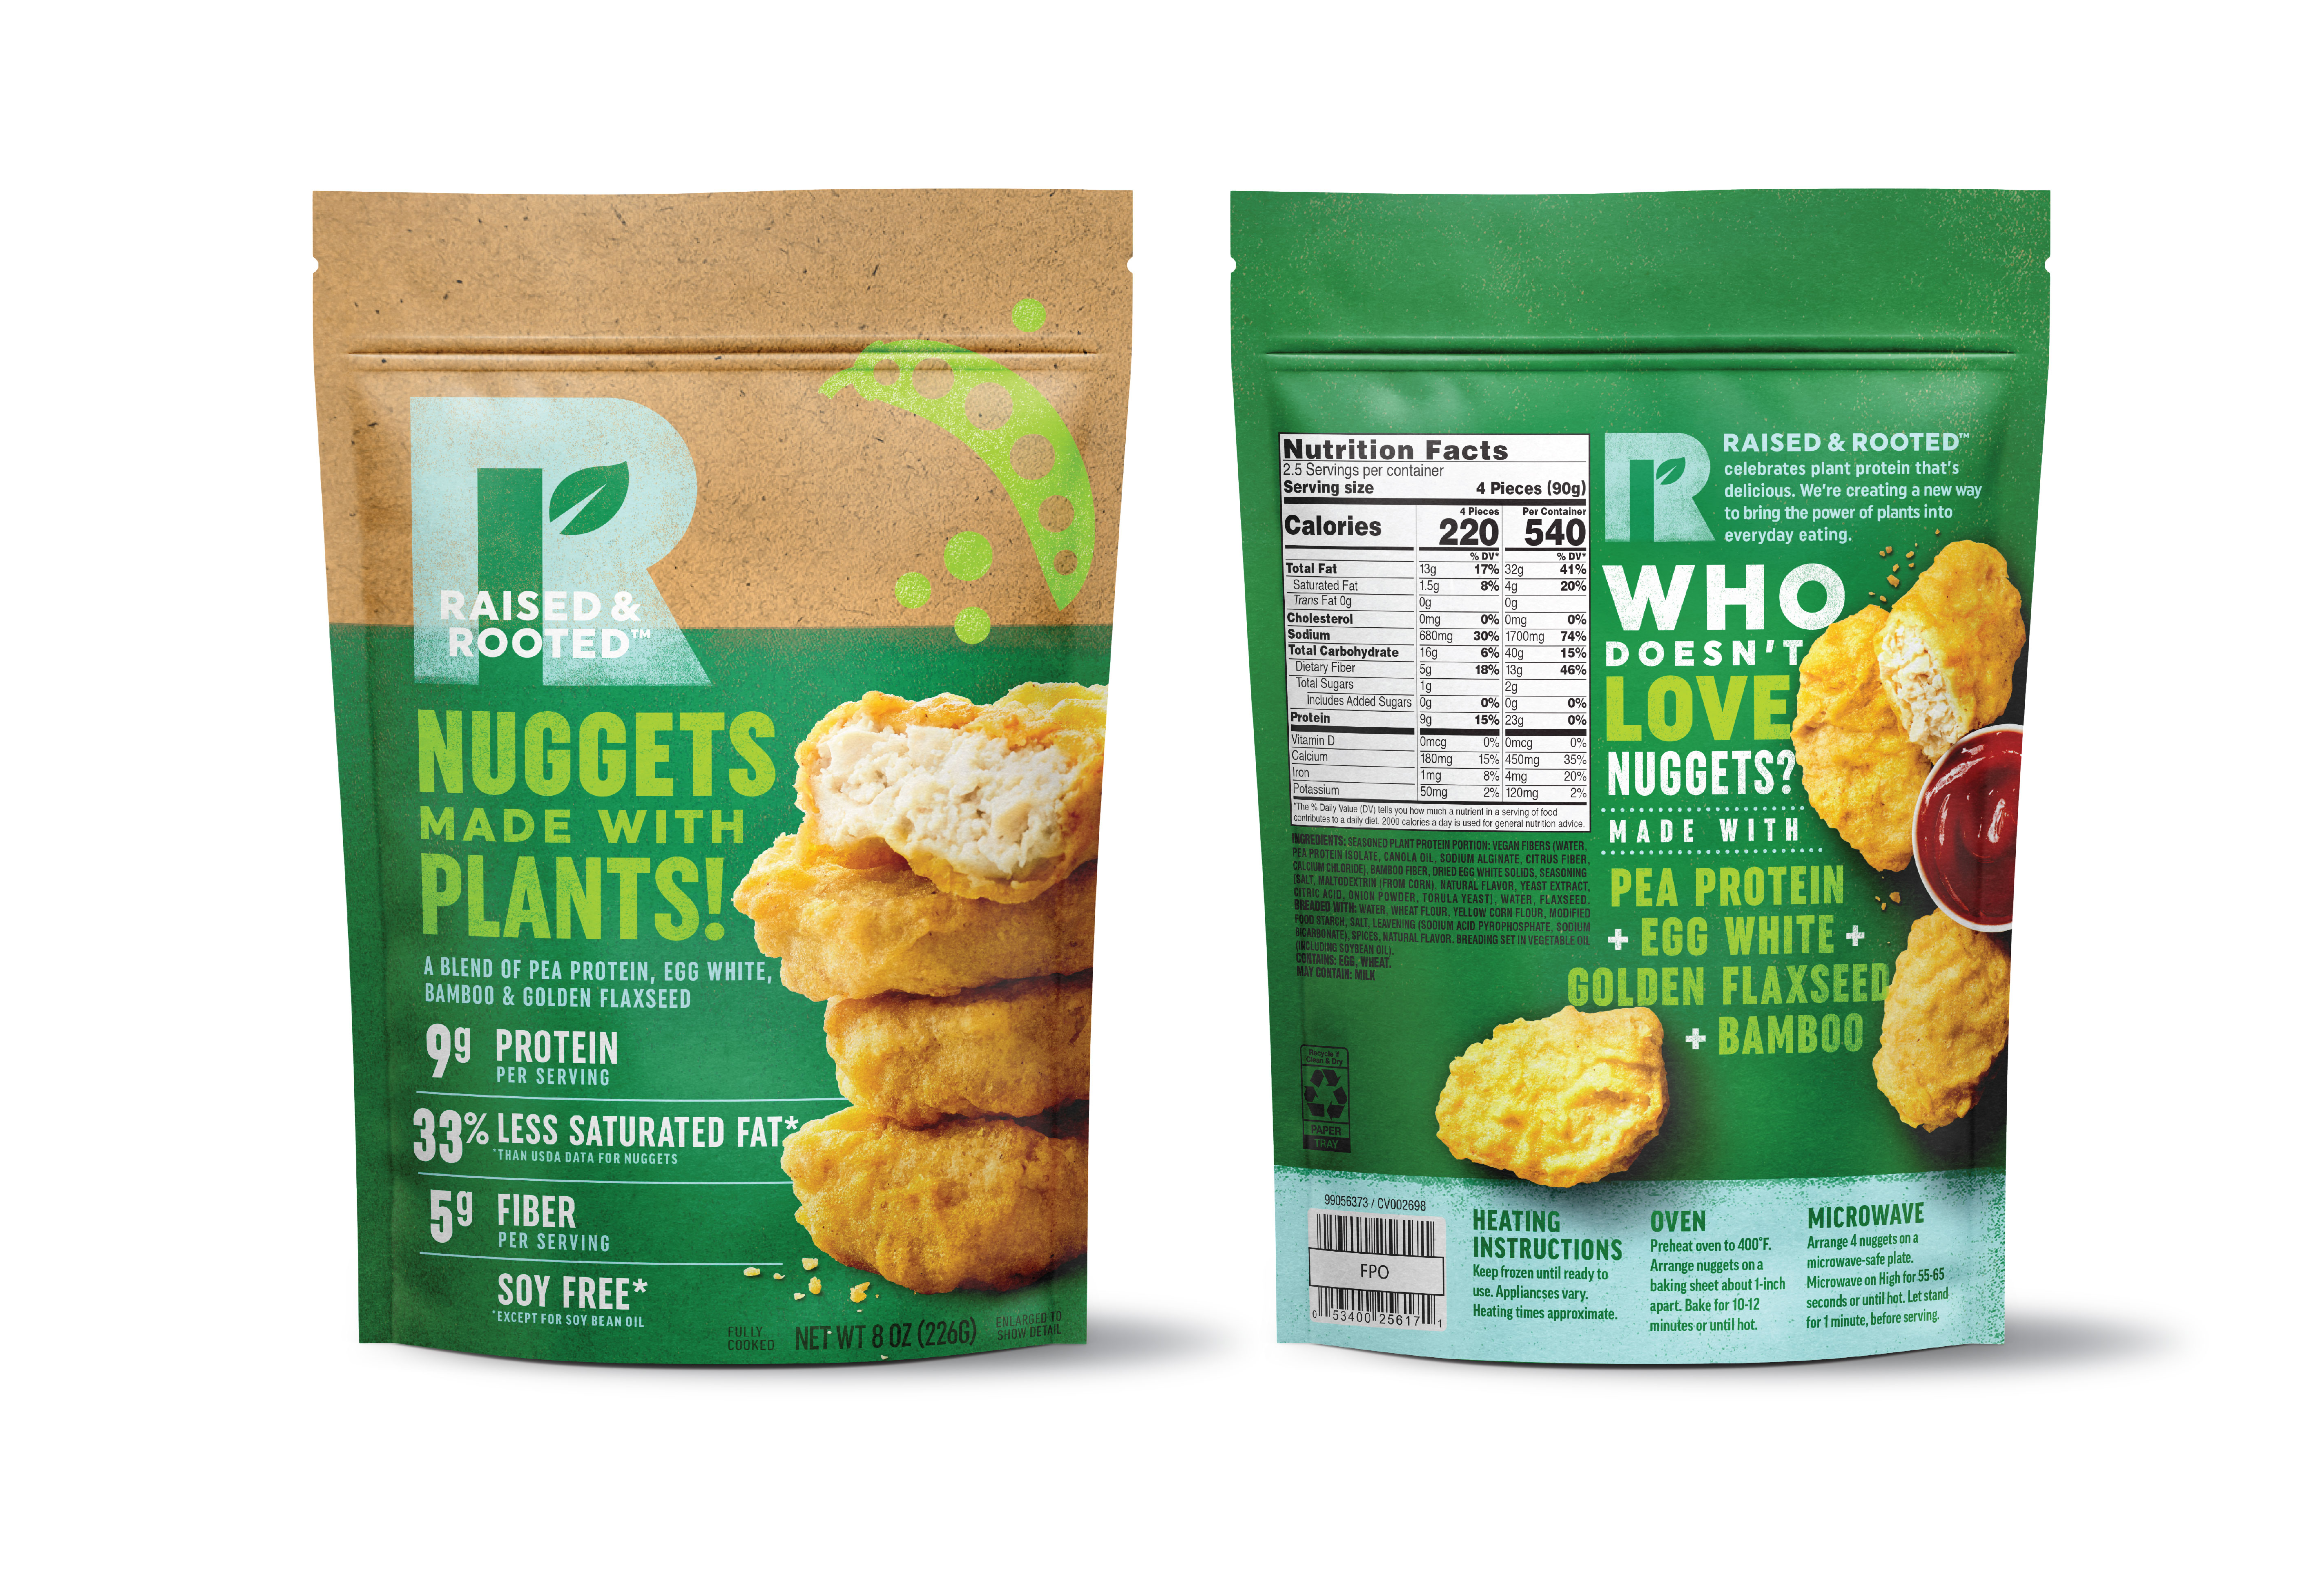 Raised & Rooted Nuggets Made with Plants Packaging